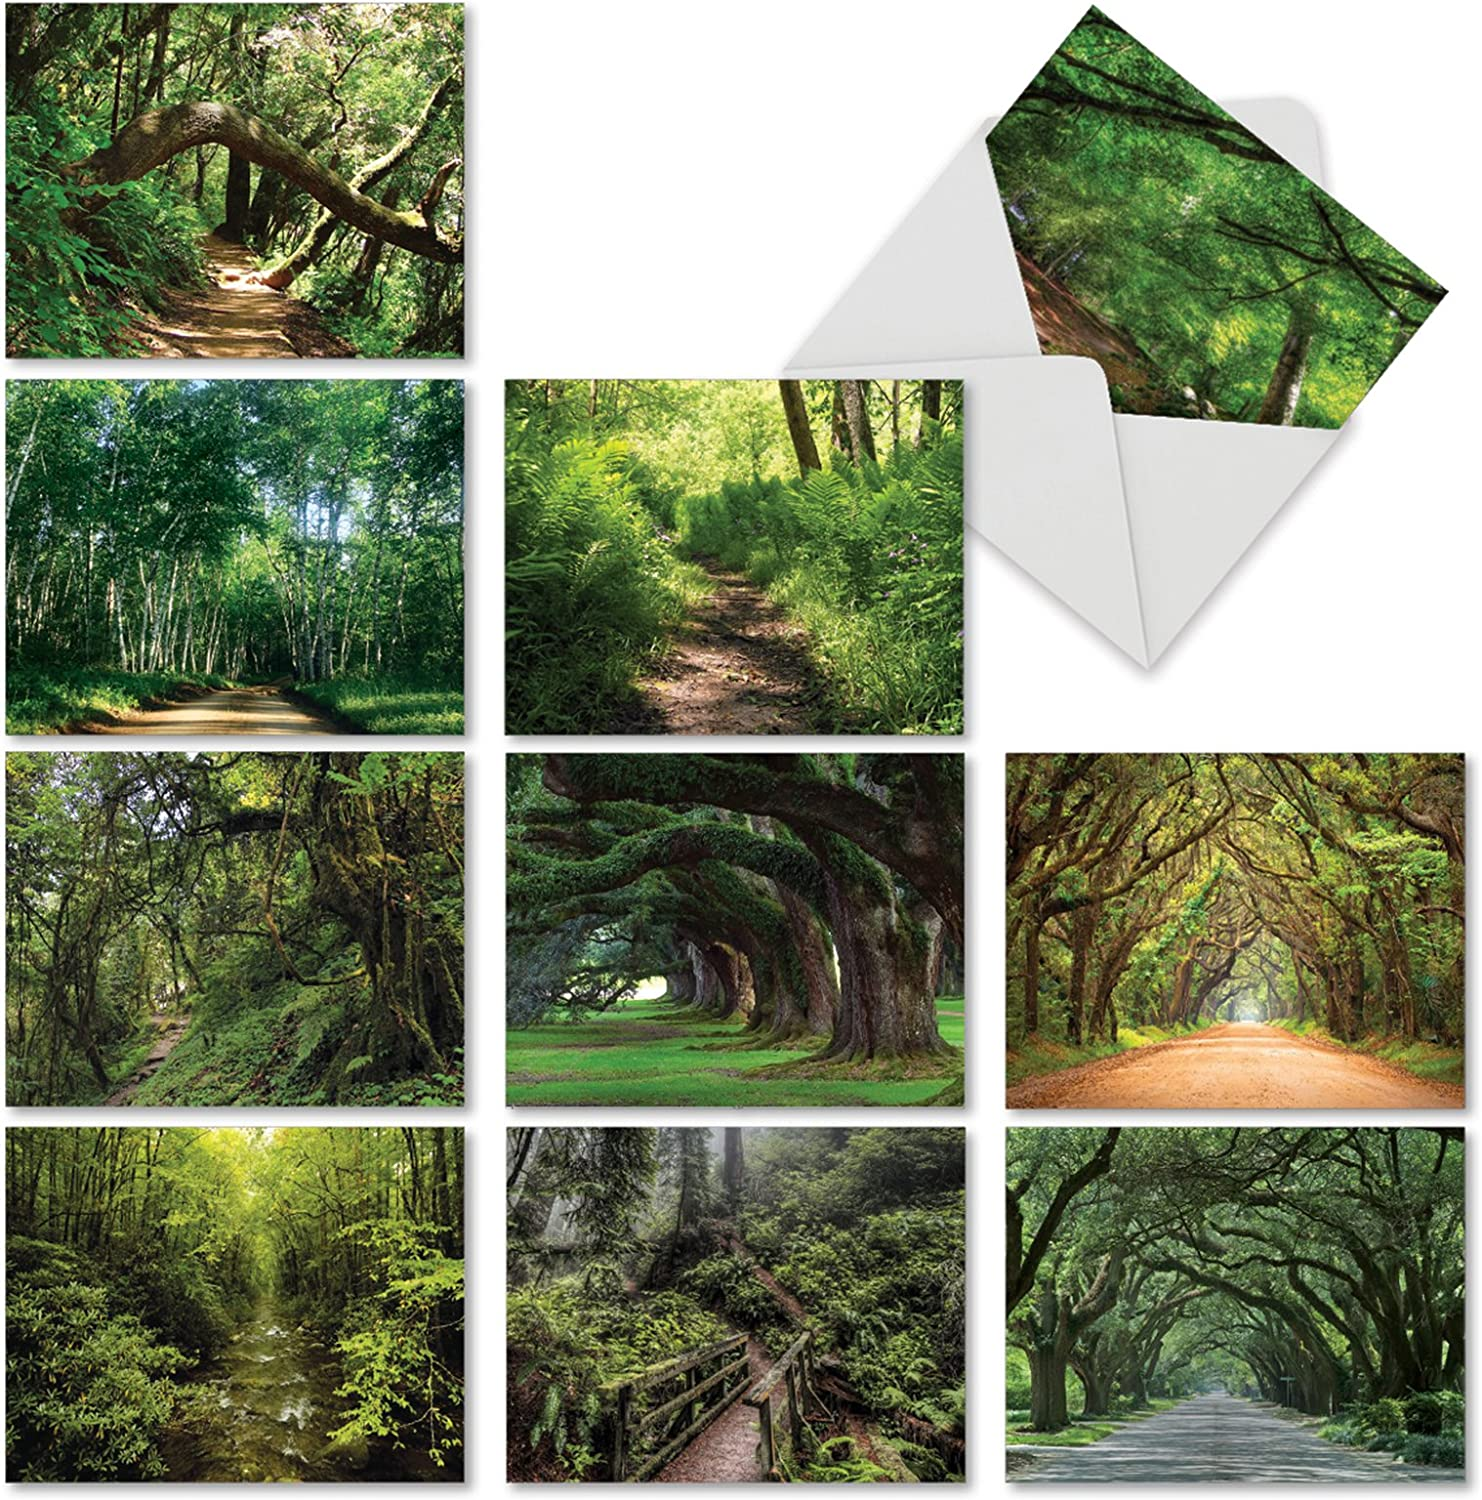 The Best Card Company - 10 Bulk Landscape Note Cards (4 x 5.12 Inch) - Beautiful Forest Paths, Blank Card Assortment - Nature Trails M6467OCB